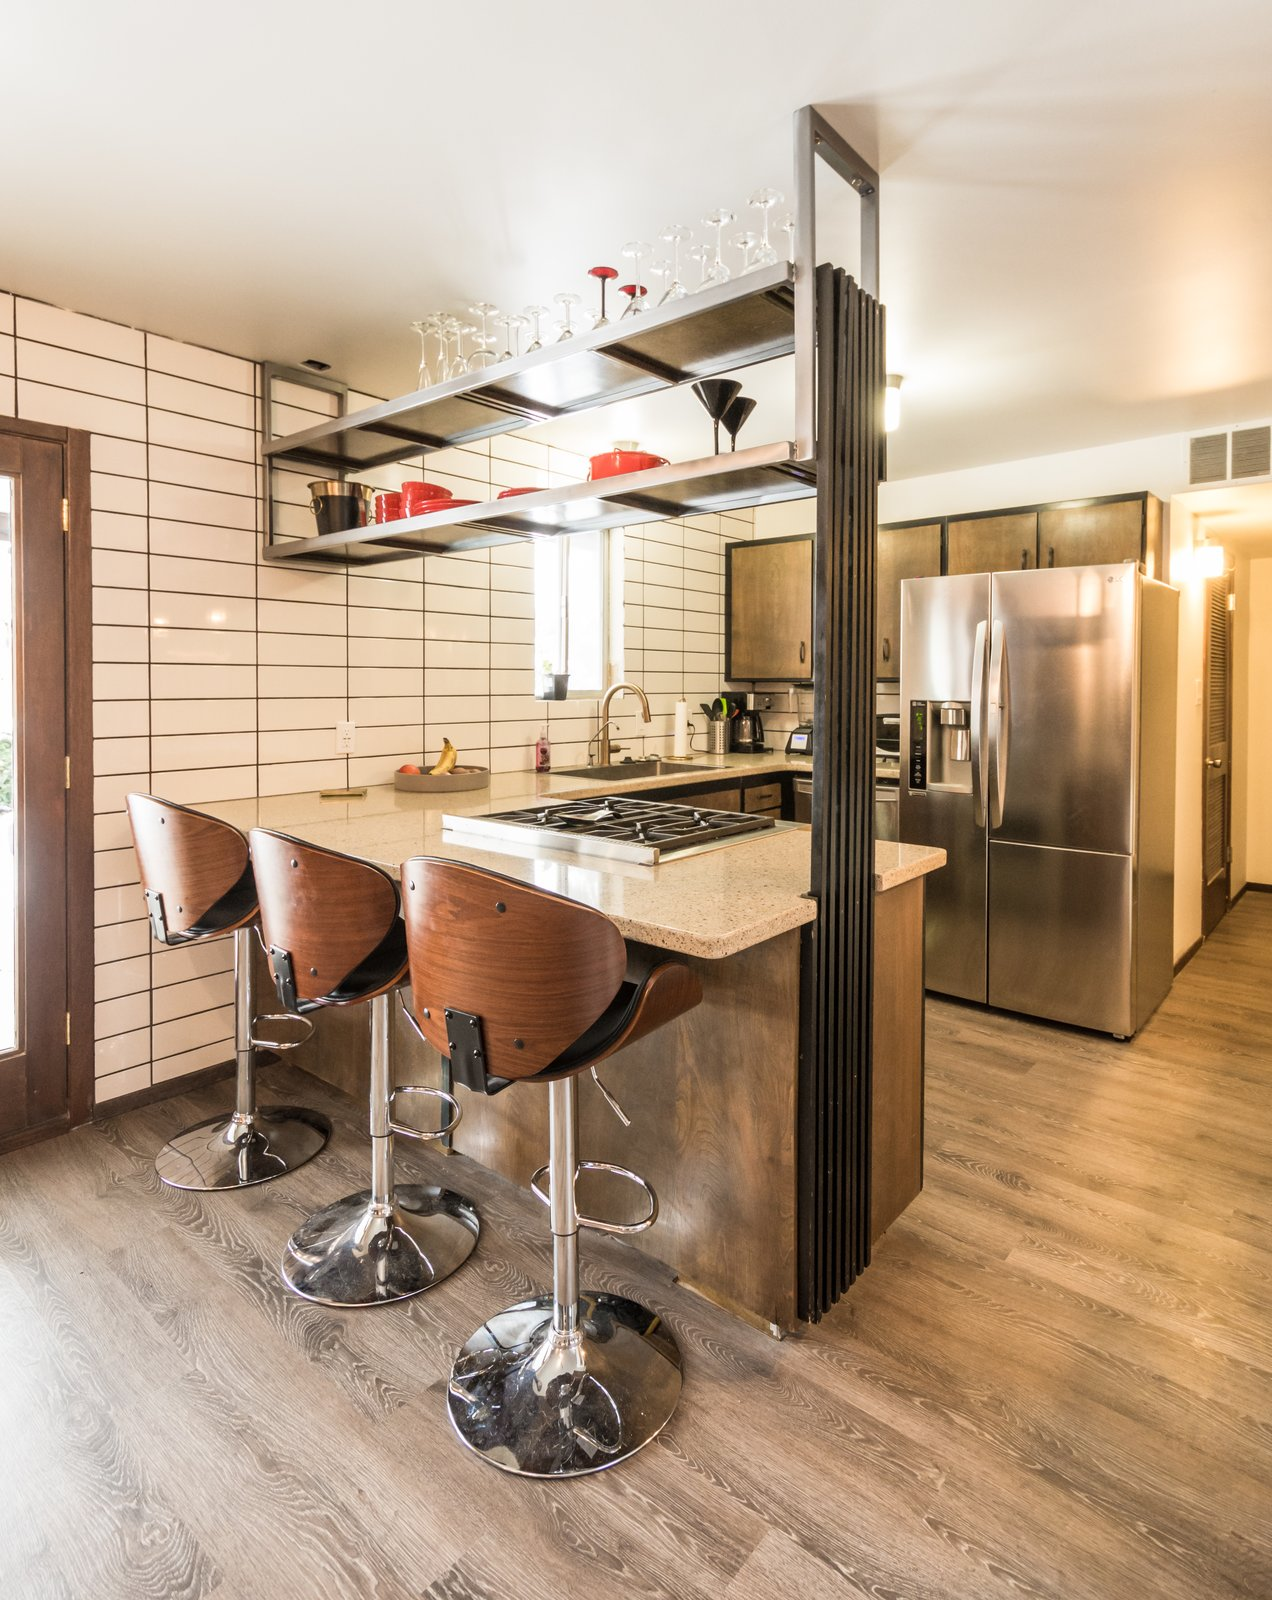 Original kitchen cabinets with new appliances, updates shelf hung from ceiling and full height back splash and original repurposed vertical wood slats  Ron Molen Revival